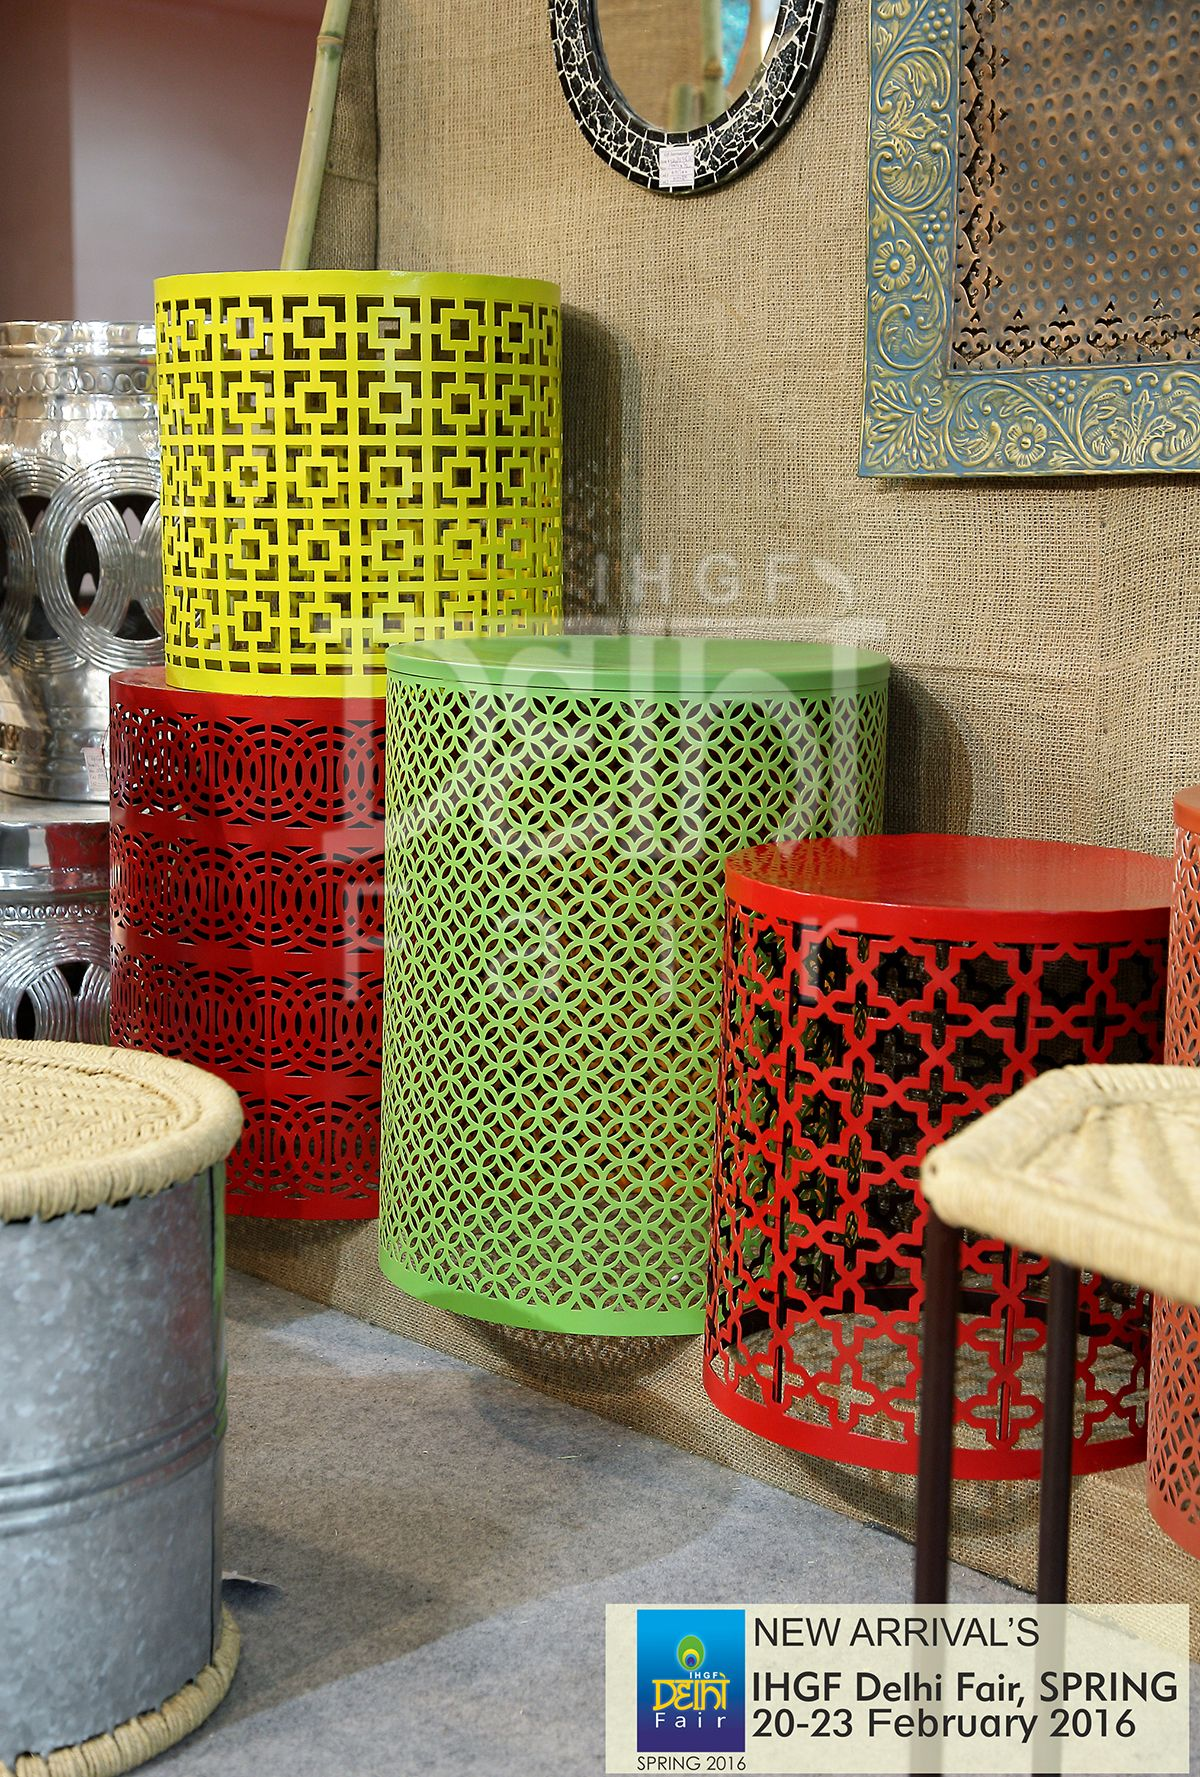 Home Accents...sheen, Shine And Solid Tones At The IHGF Delhi Fair